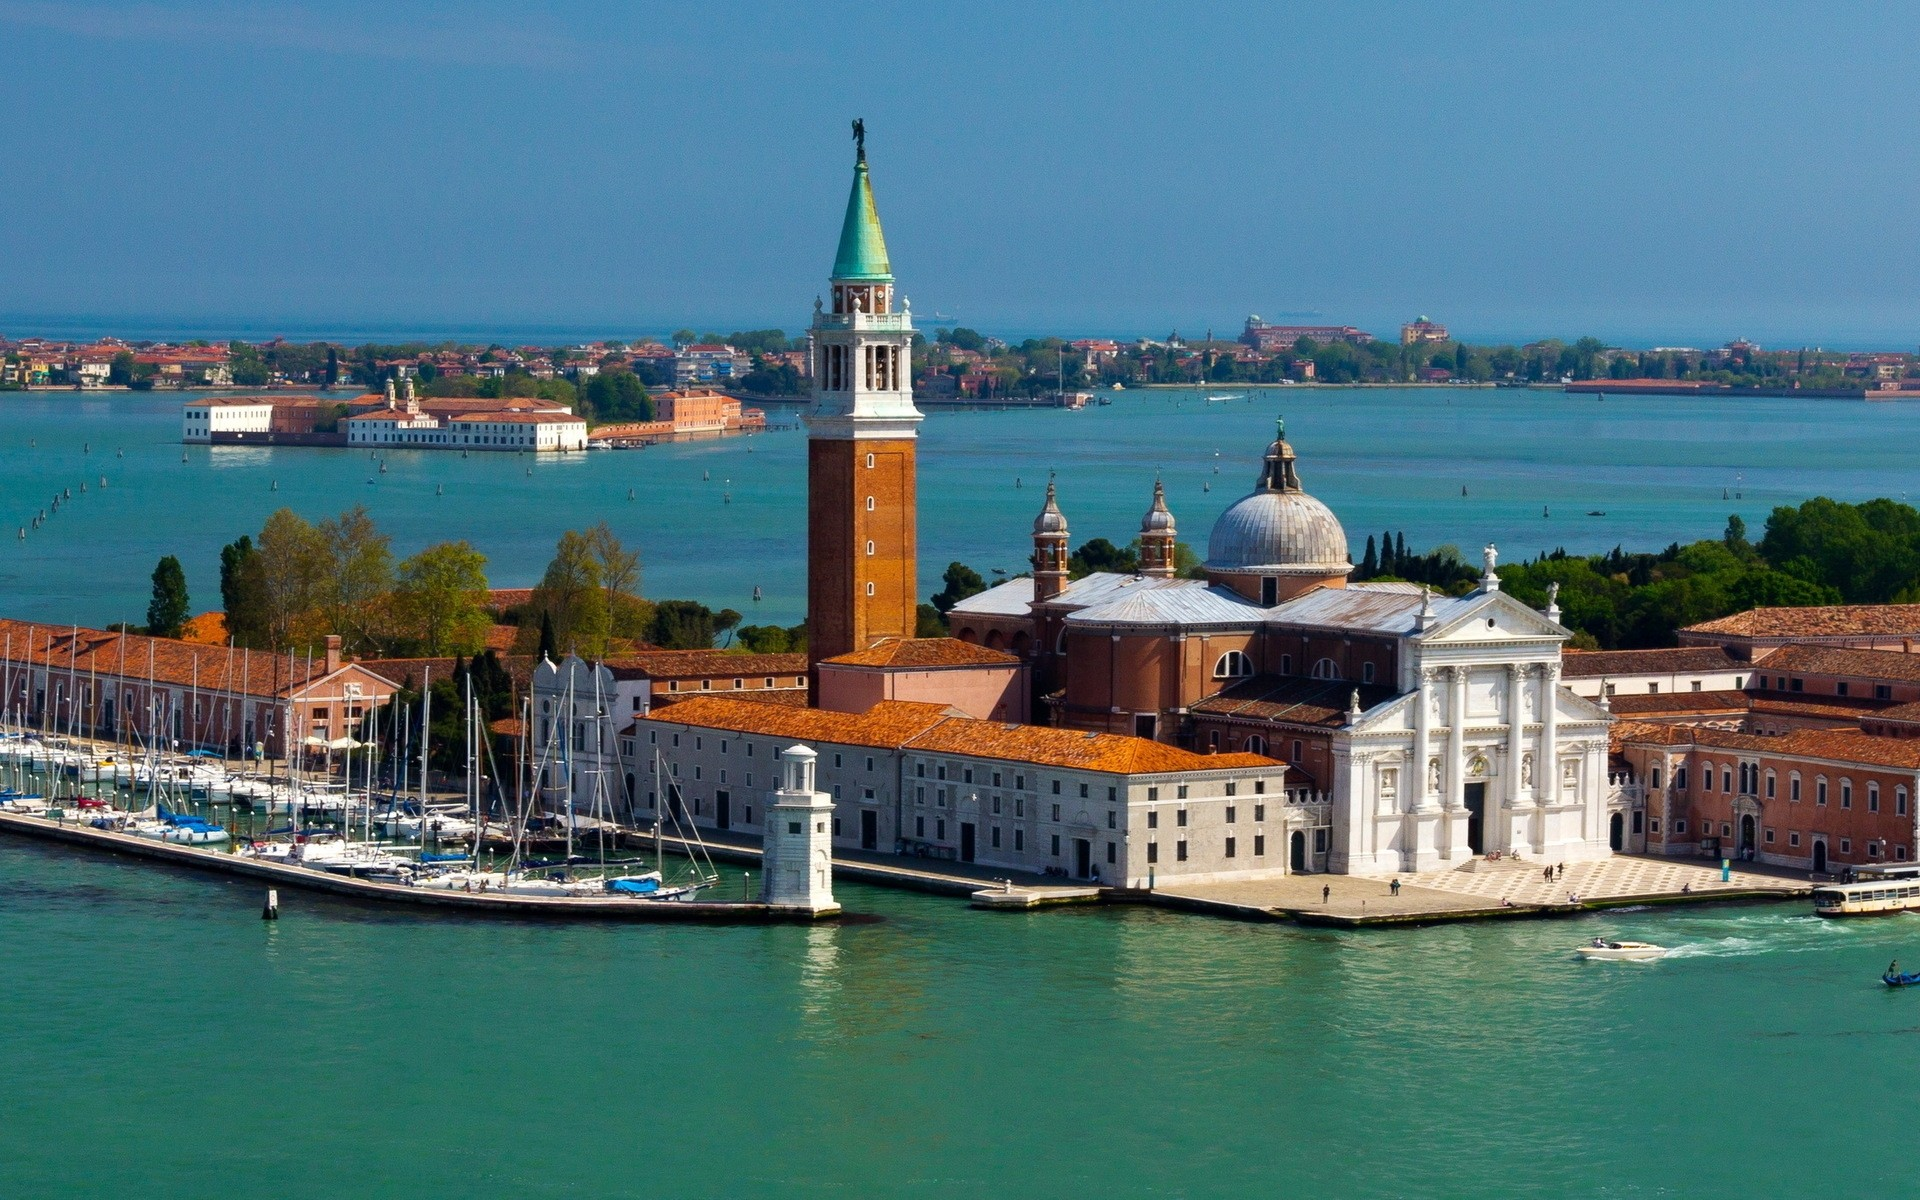 italy water travel watercraft architecture city harbor sea boat canal building ship transportation system sky cityscape town tourism outdoors river pier island san giorgio maggiore venice church